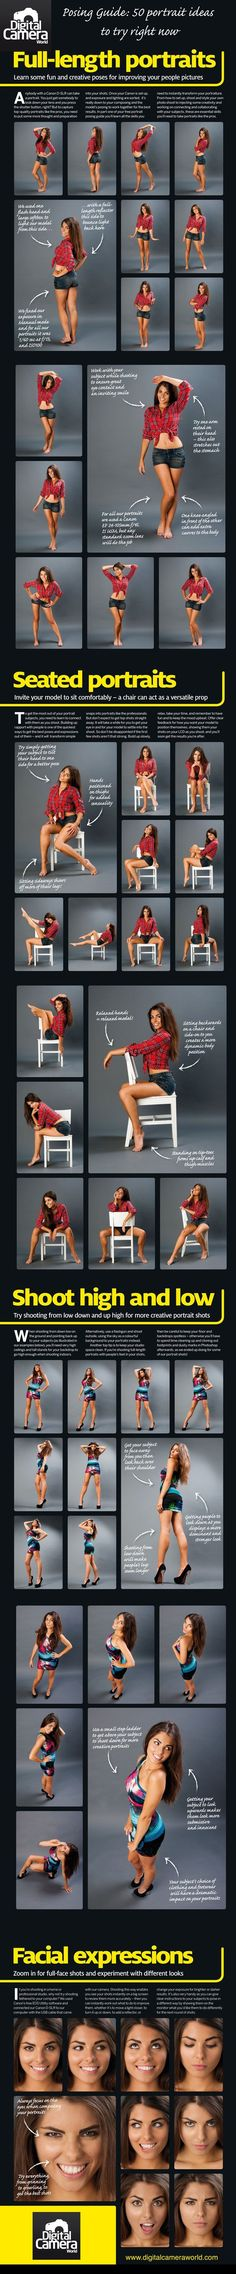 54 Portrait Ideas: photography cheat sheet | AreaderZ some are a little provocative but it's got some good points!: